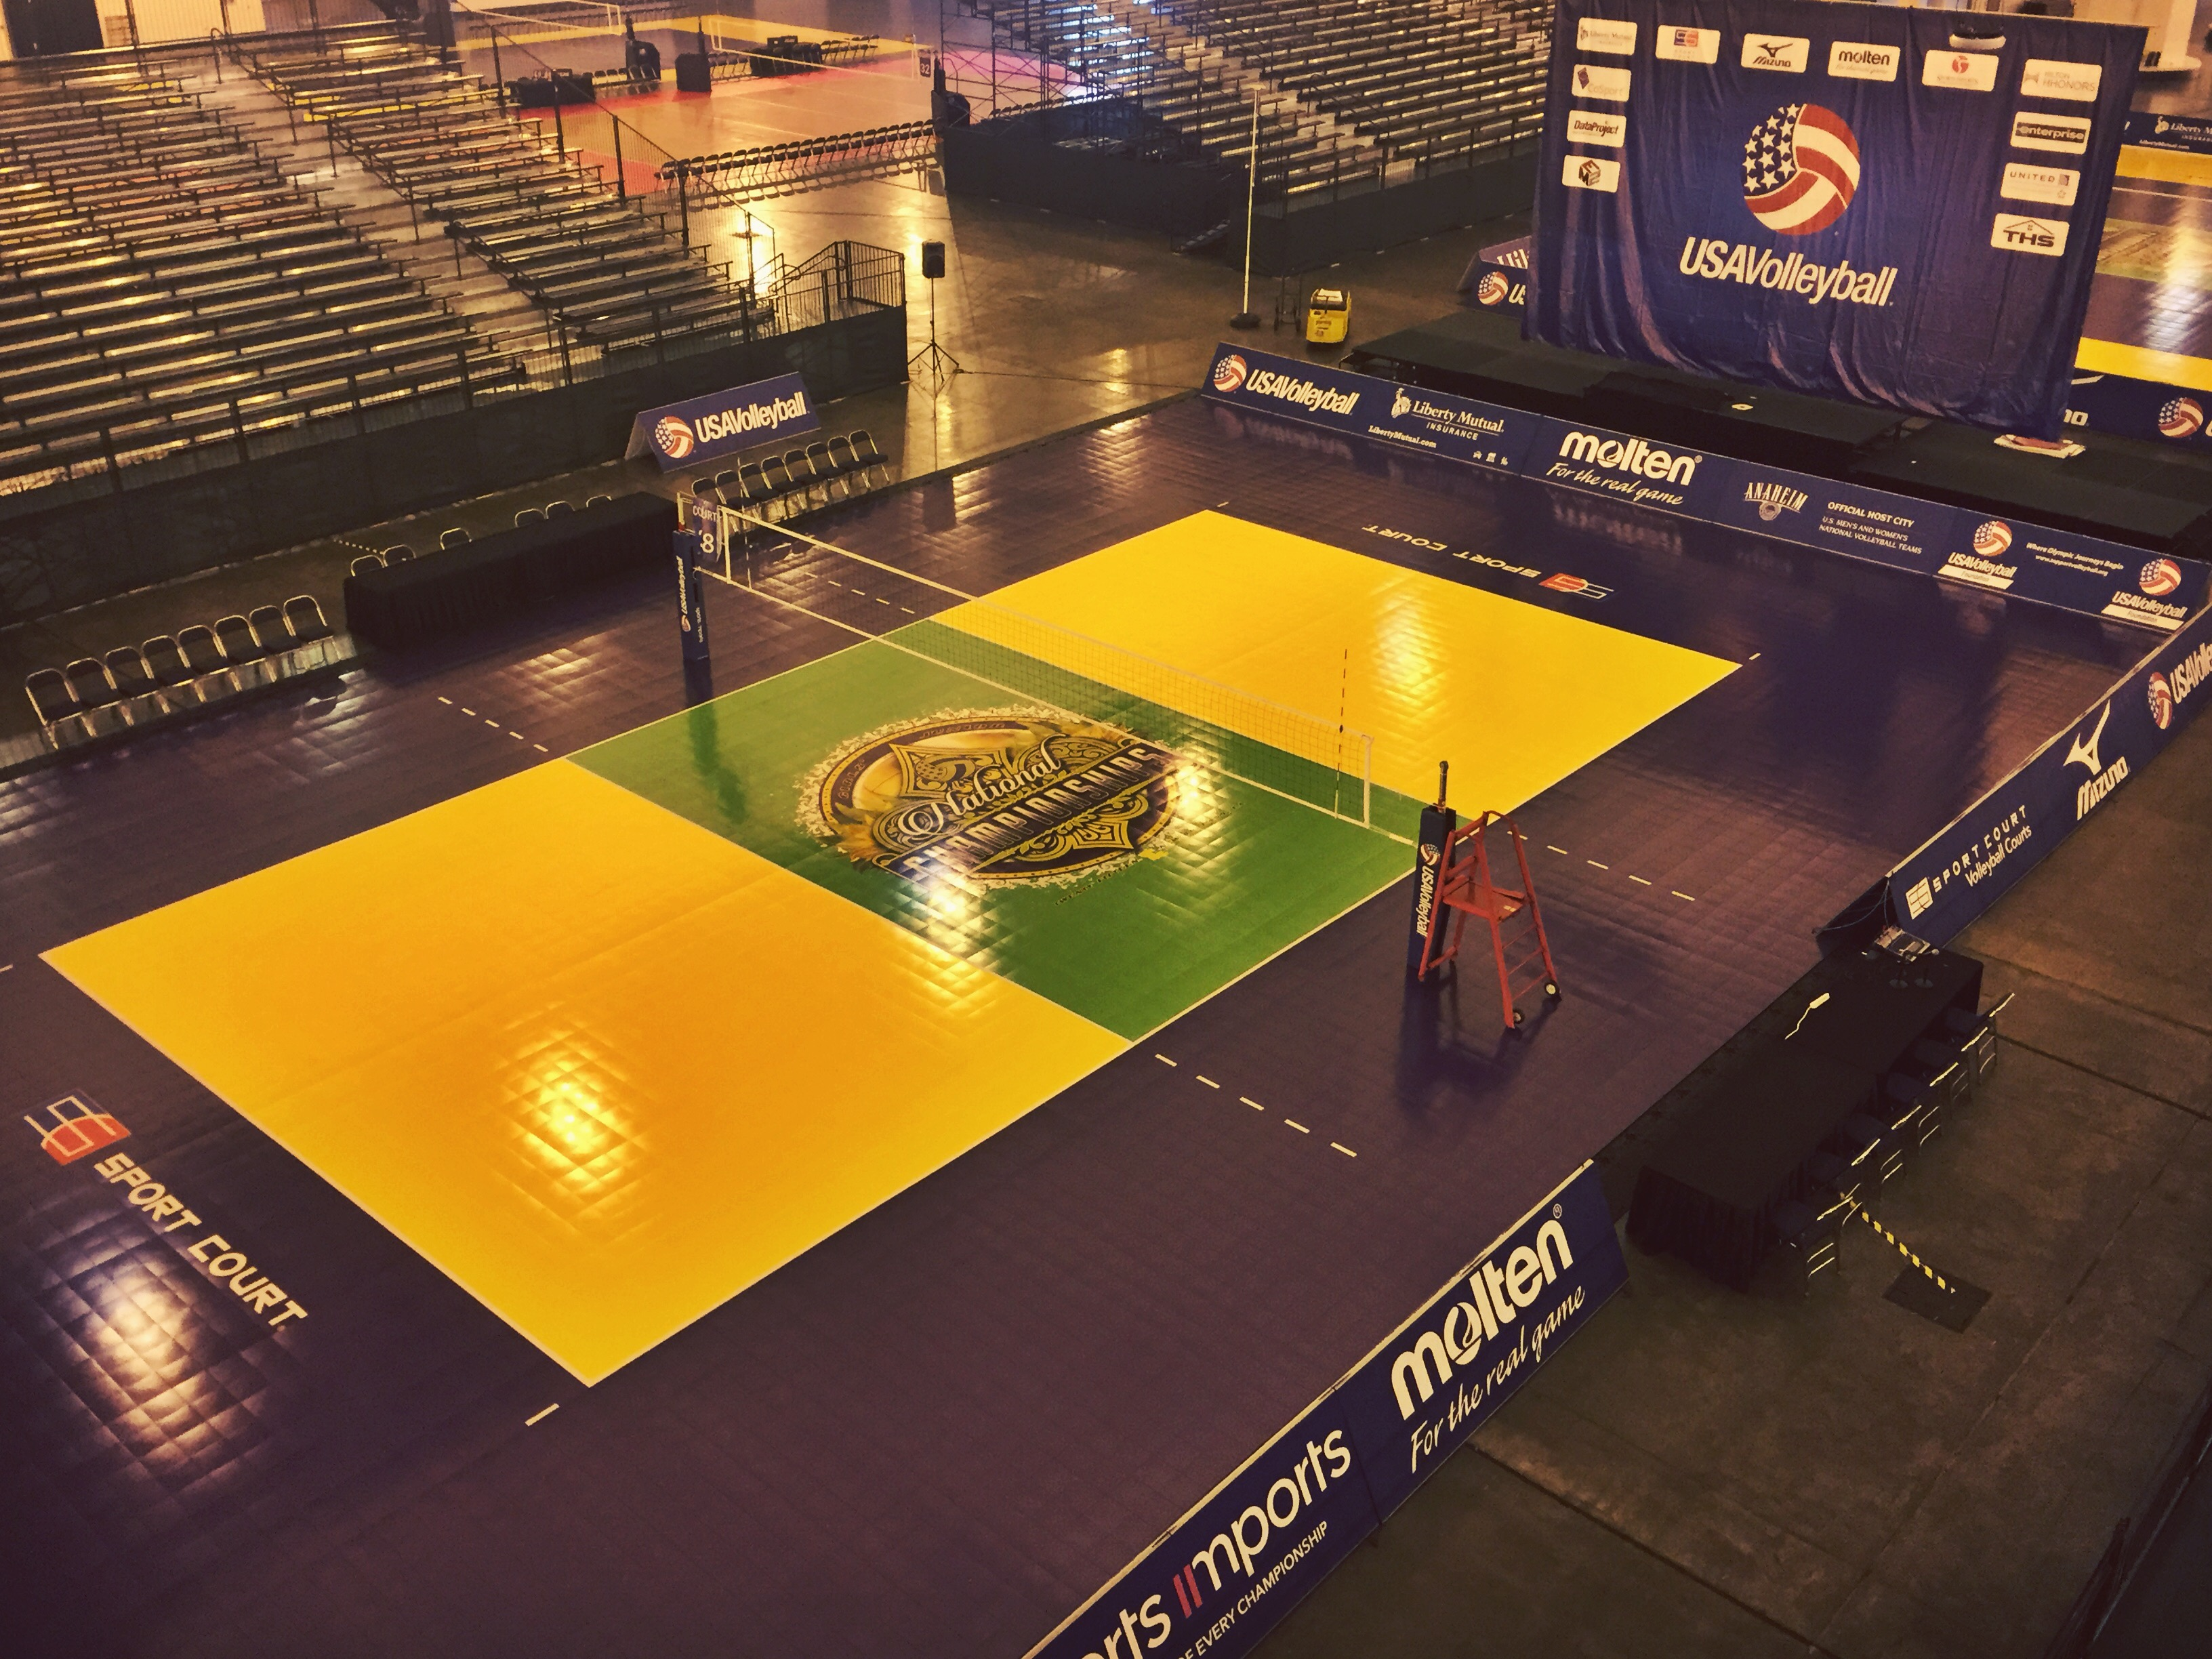 USA Volleyball Girls' And Boys' Junior 2015 Nationals To Set Participation Records On Sport Court® Surfaces